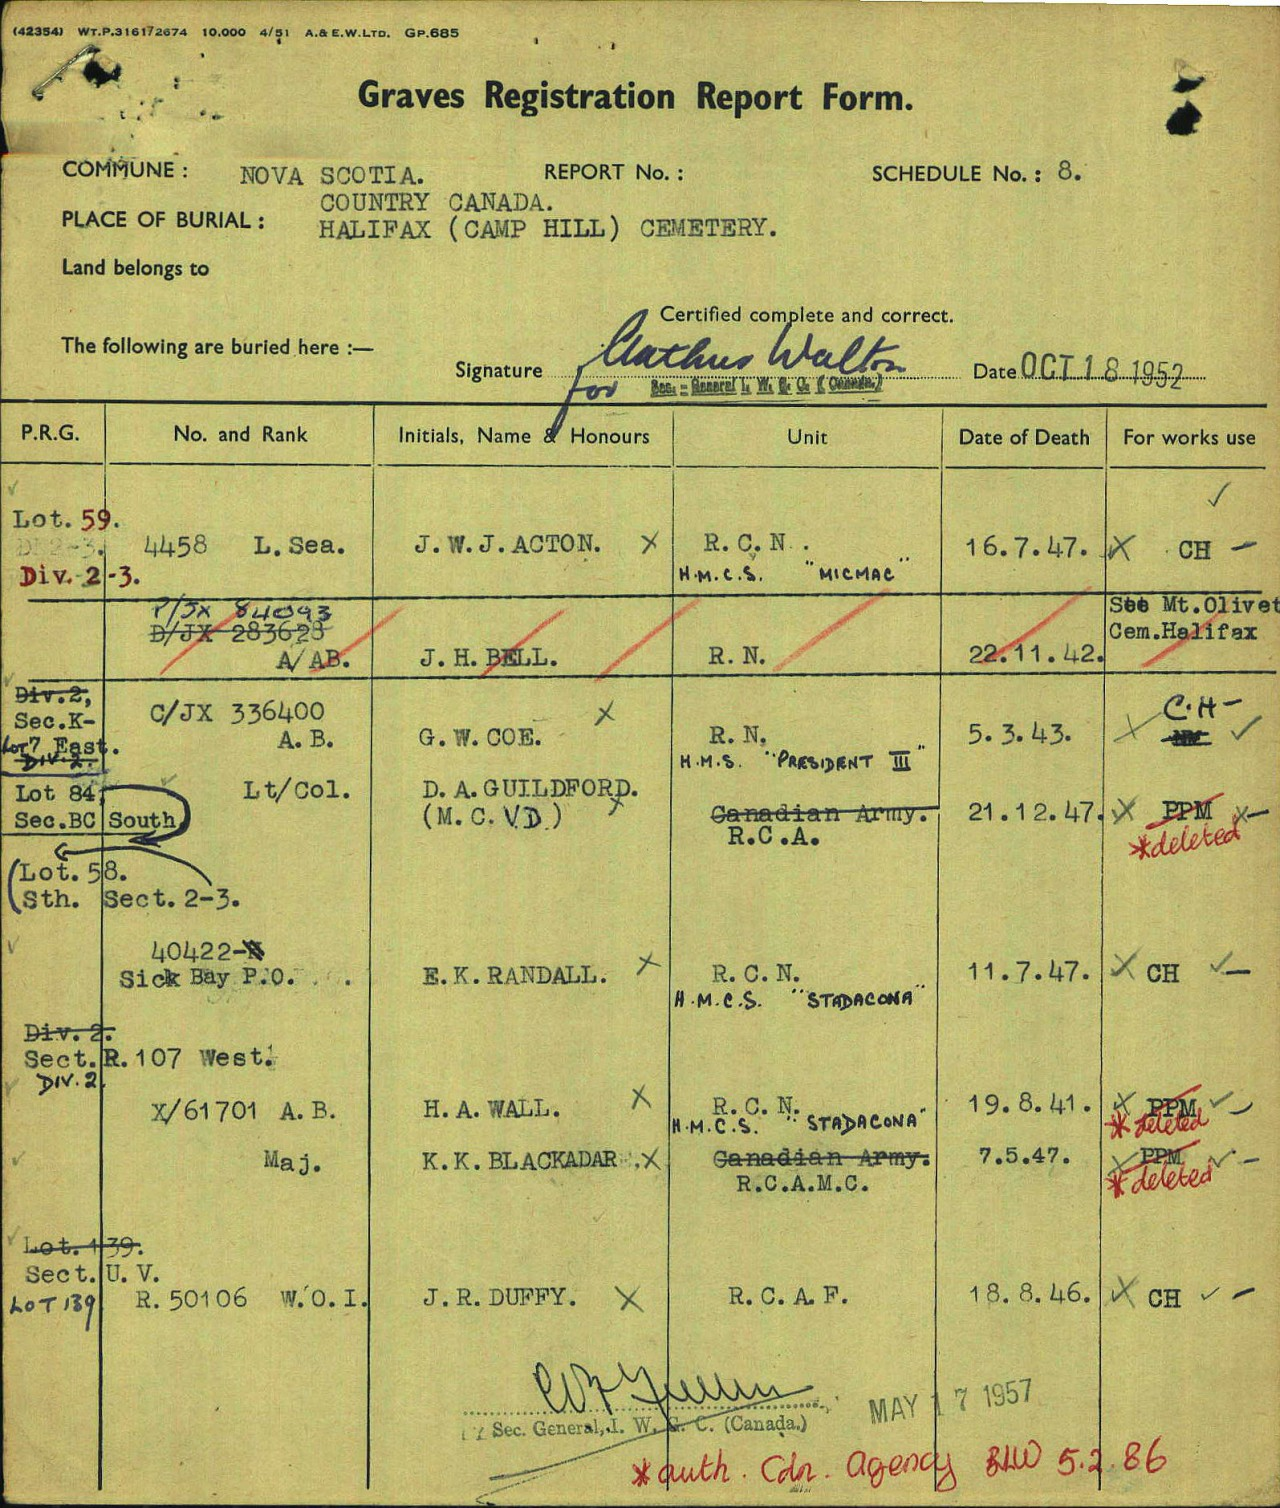 Graves Registration Report– Graves registration report showing burial information for Karl Kenneth Blackadar at Camp Hill Cemetery in Halifax, Nova Scotia.